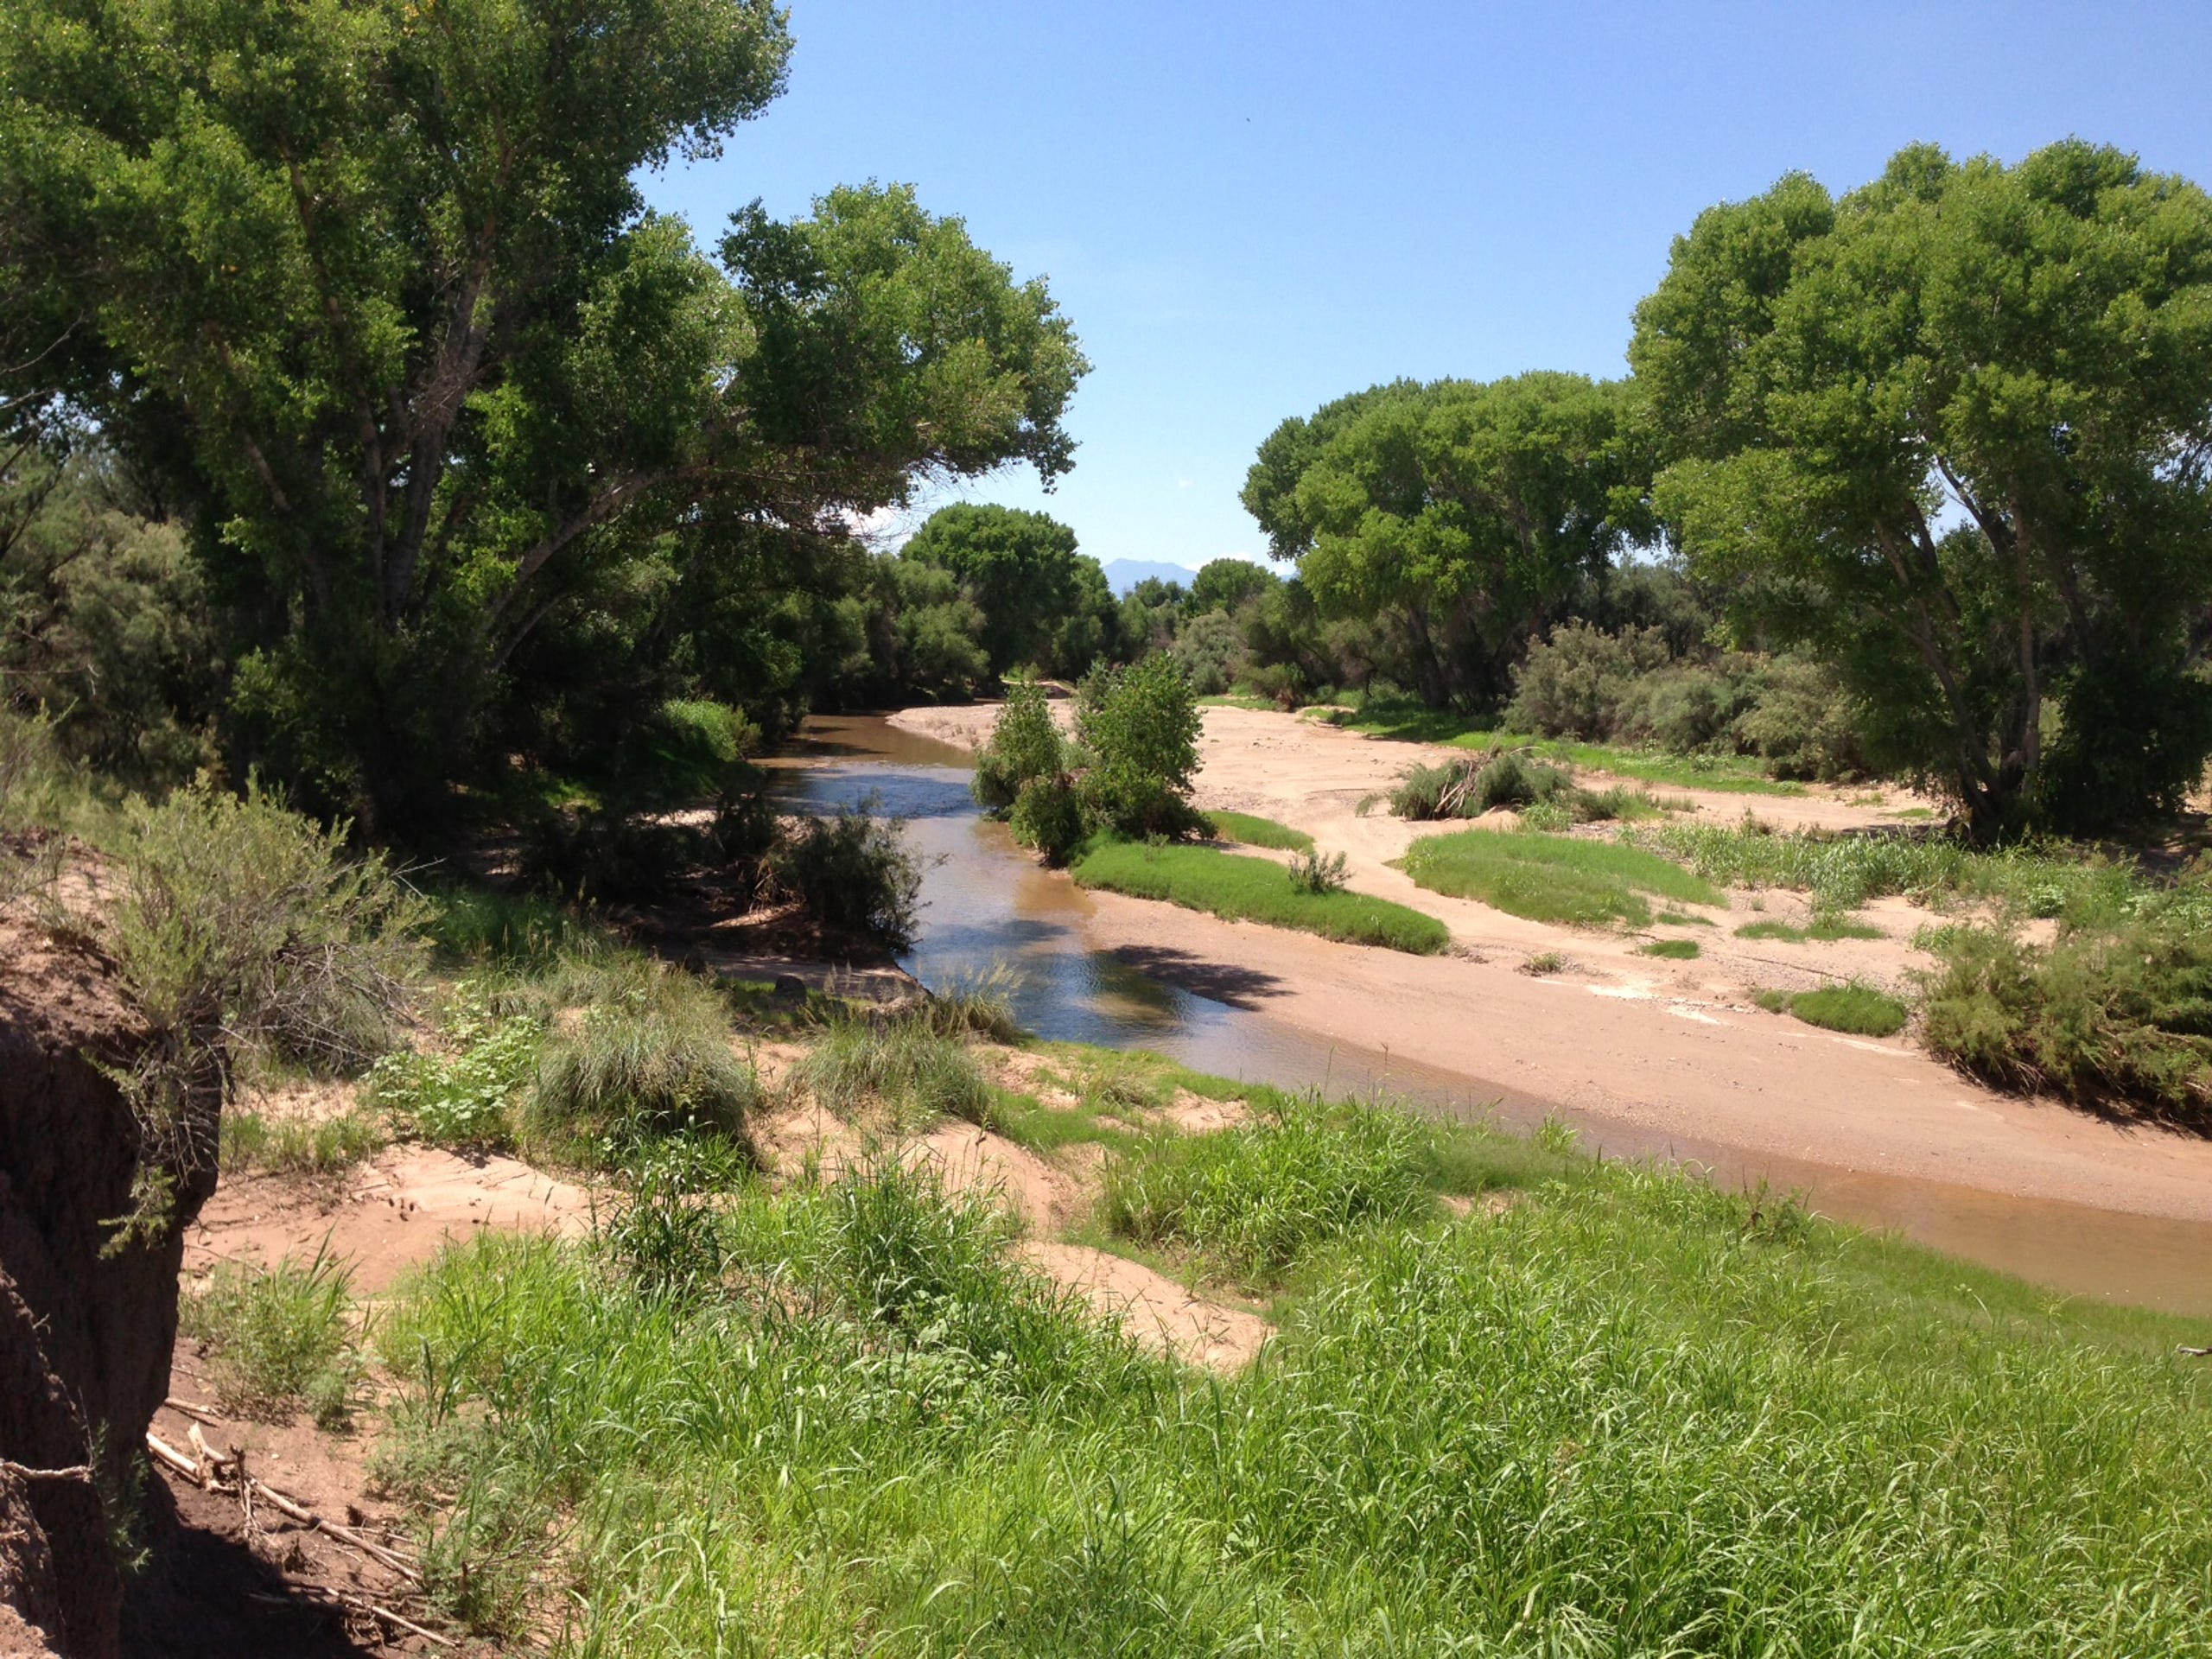 The ghost town of Fairbank, in Cochise County, has a walking trail that winds through mesquite groves, past the old cemetery and ruins of a mill. It ends with views of the San Pedro River.